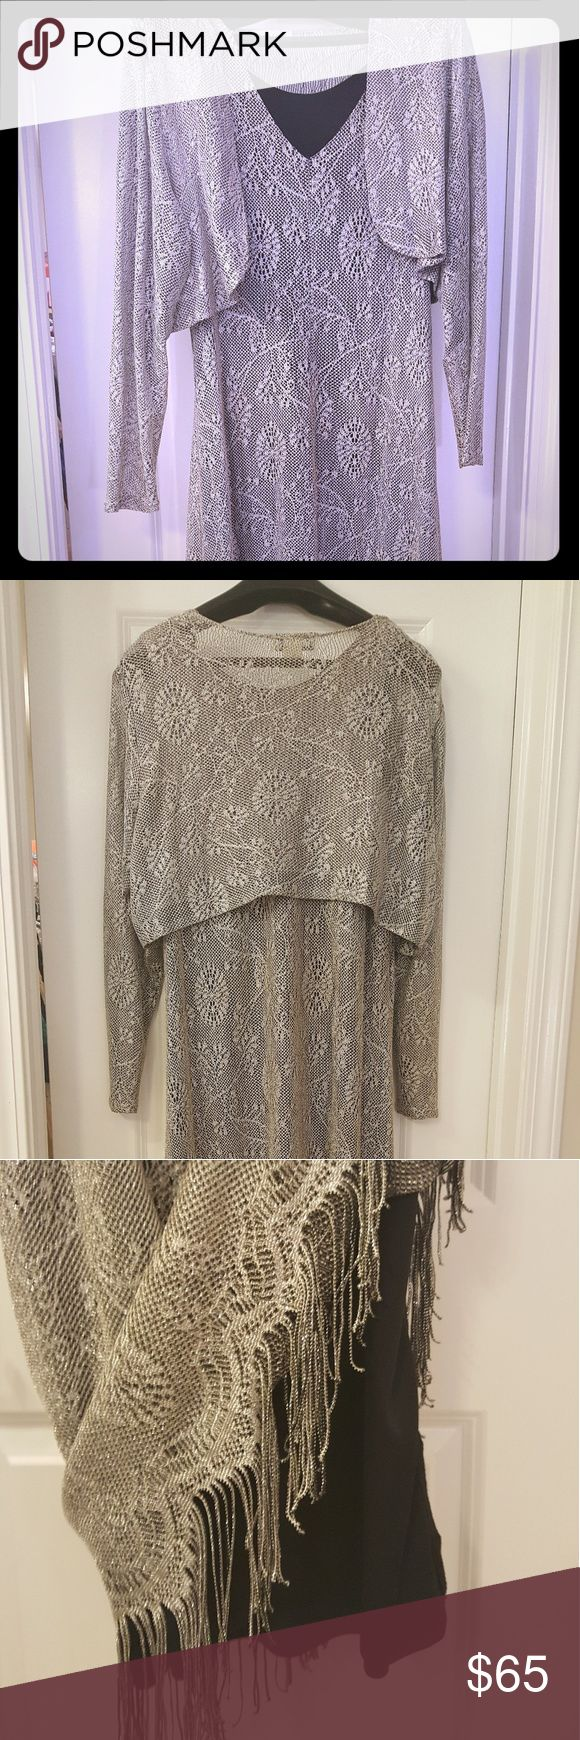 Harlow nites, Ventage Silver Two Piece EveningGown Harlow nites- Ventage Silver embroidered, two piece evening gown. Great Condition! Fully lined. Matching Crop jacket. Fringes on the bottom. Harlow nites Dresses Maxi